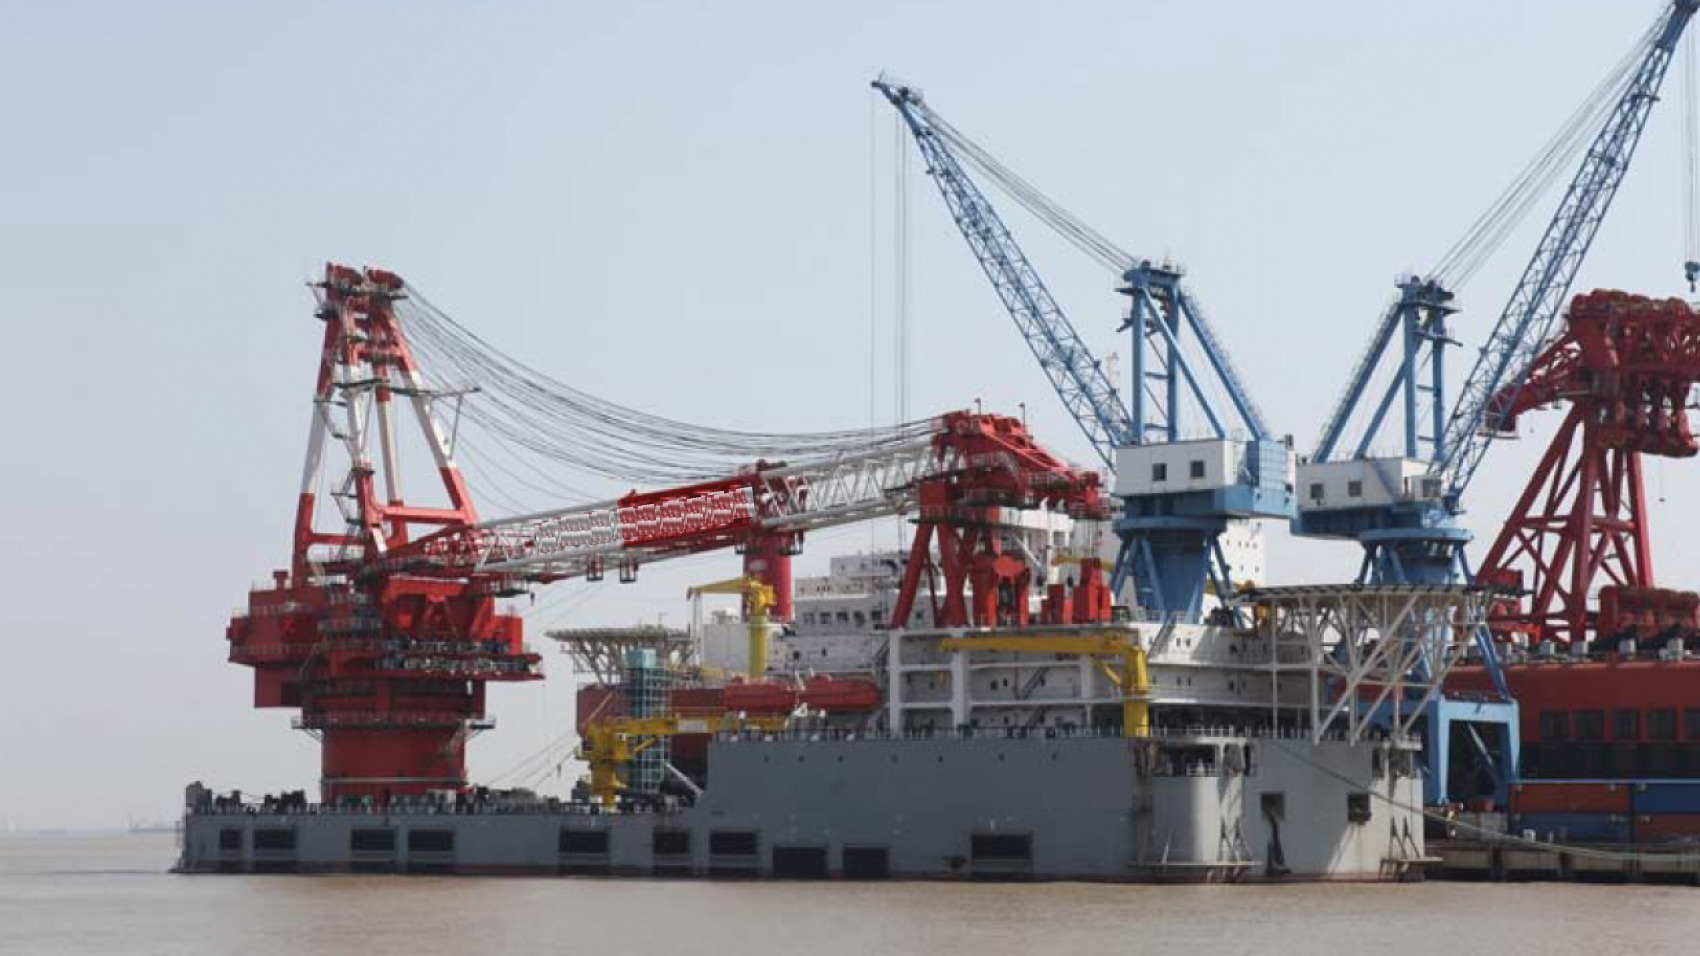 2000T-Full-Revolving-Crane-Barge-For-Sale-File3